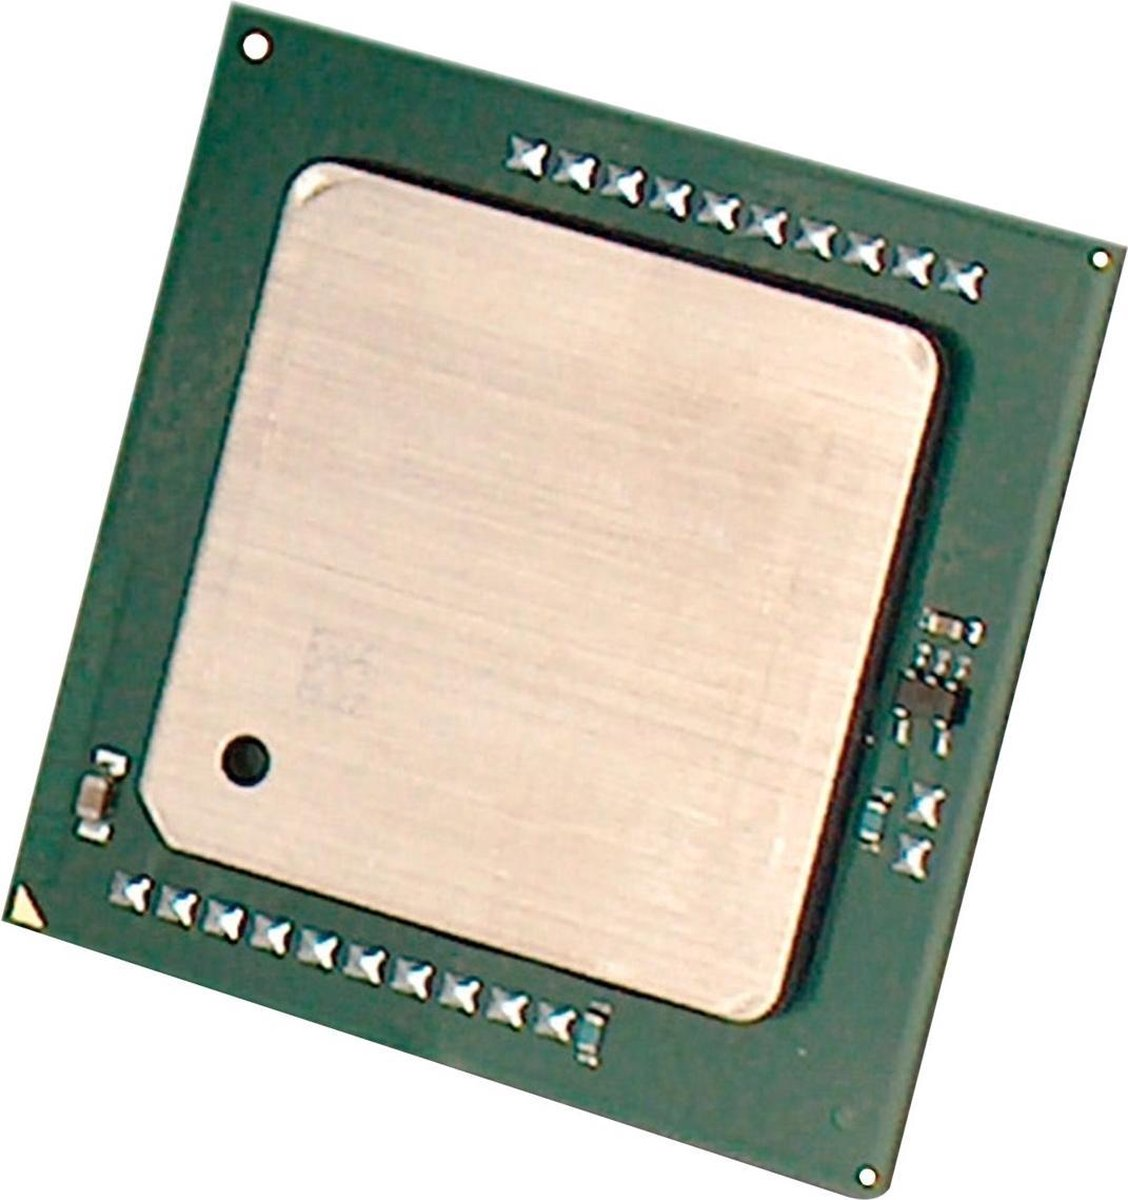 Hewlett Packard Enterprise Xeon E5-2667 v4 ML350 Gen9 Kit 3.2GHz 25MB Smart Cache processor